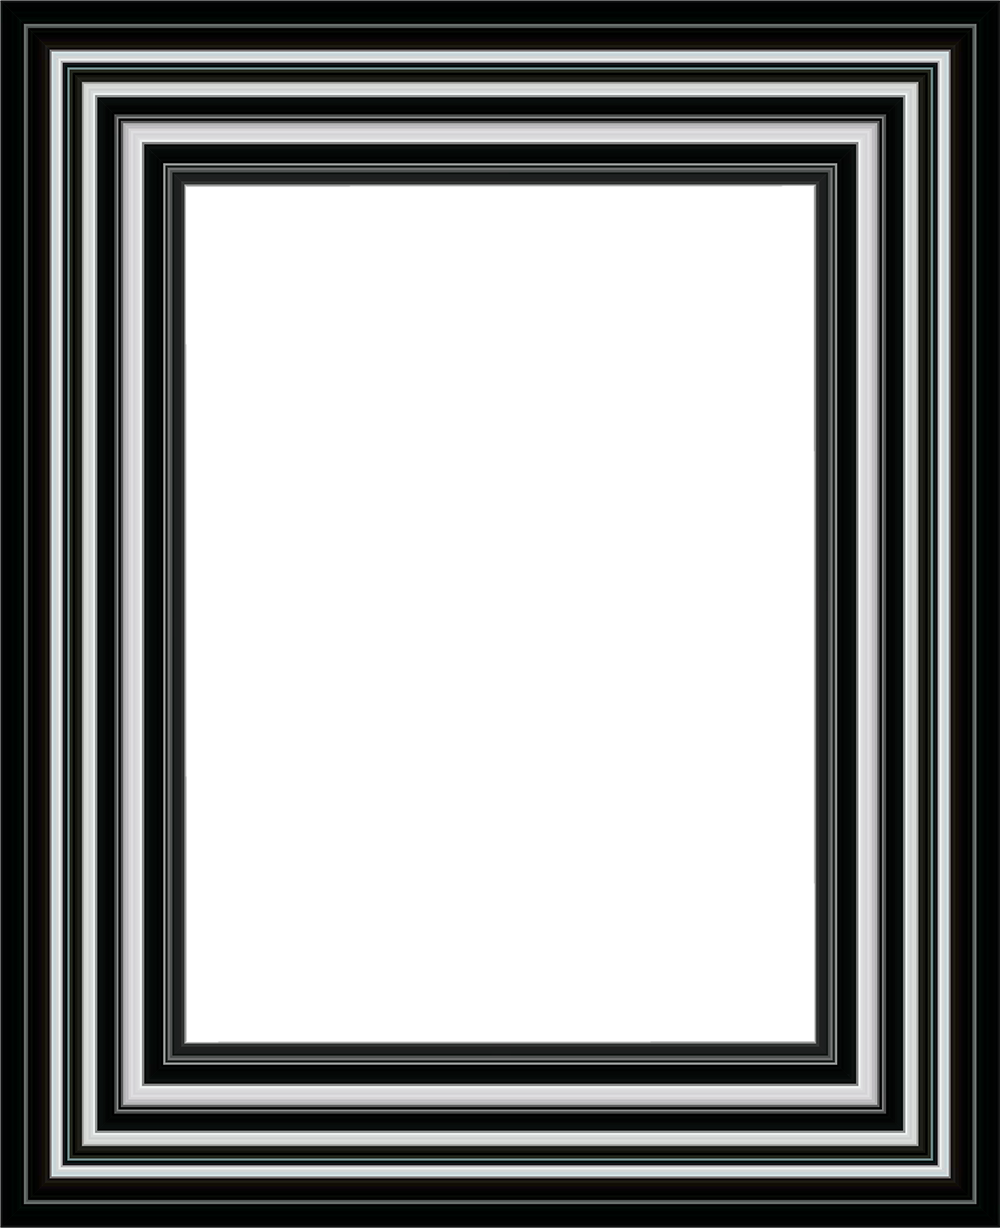 Frames | The Art Group